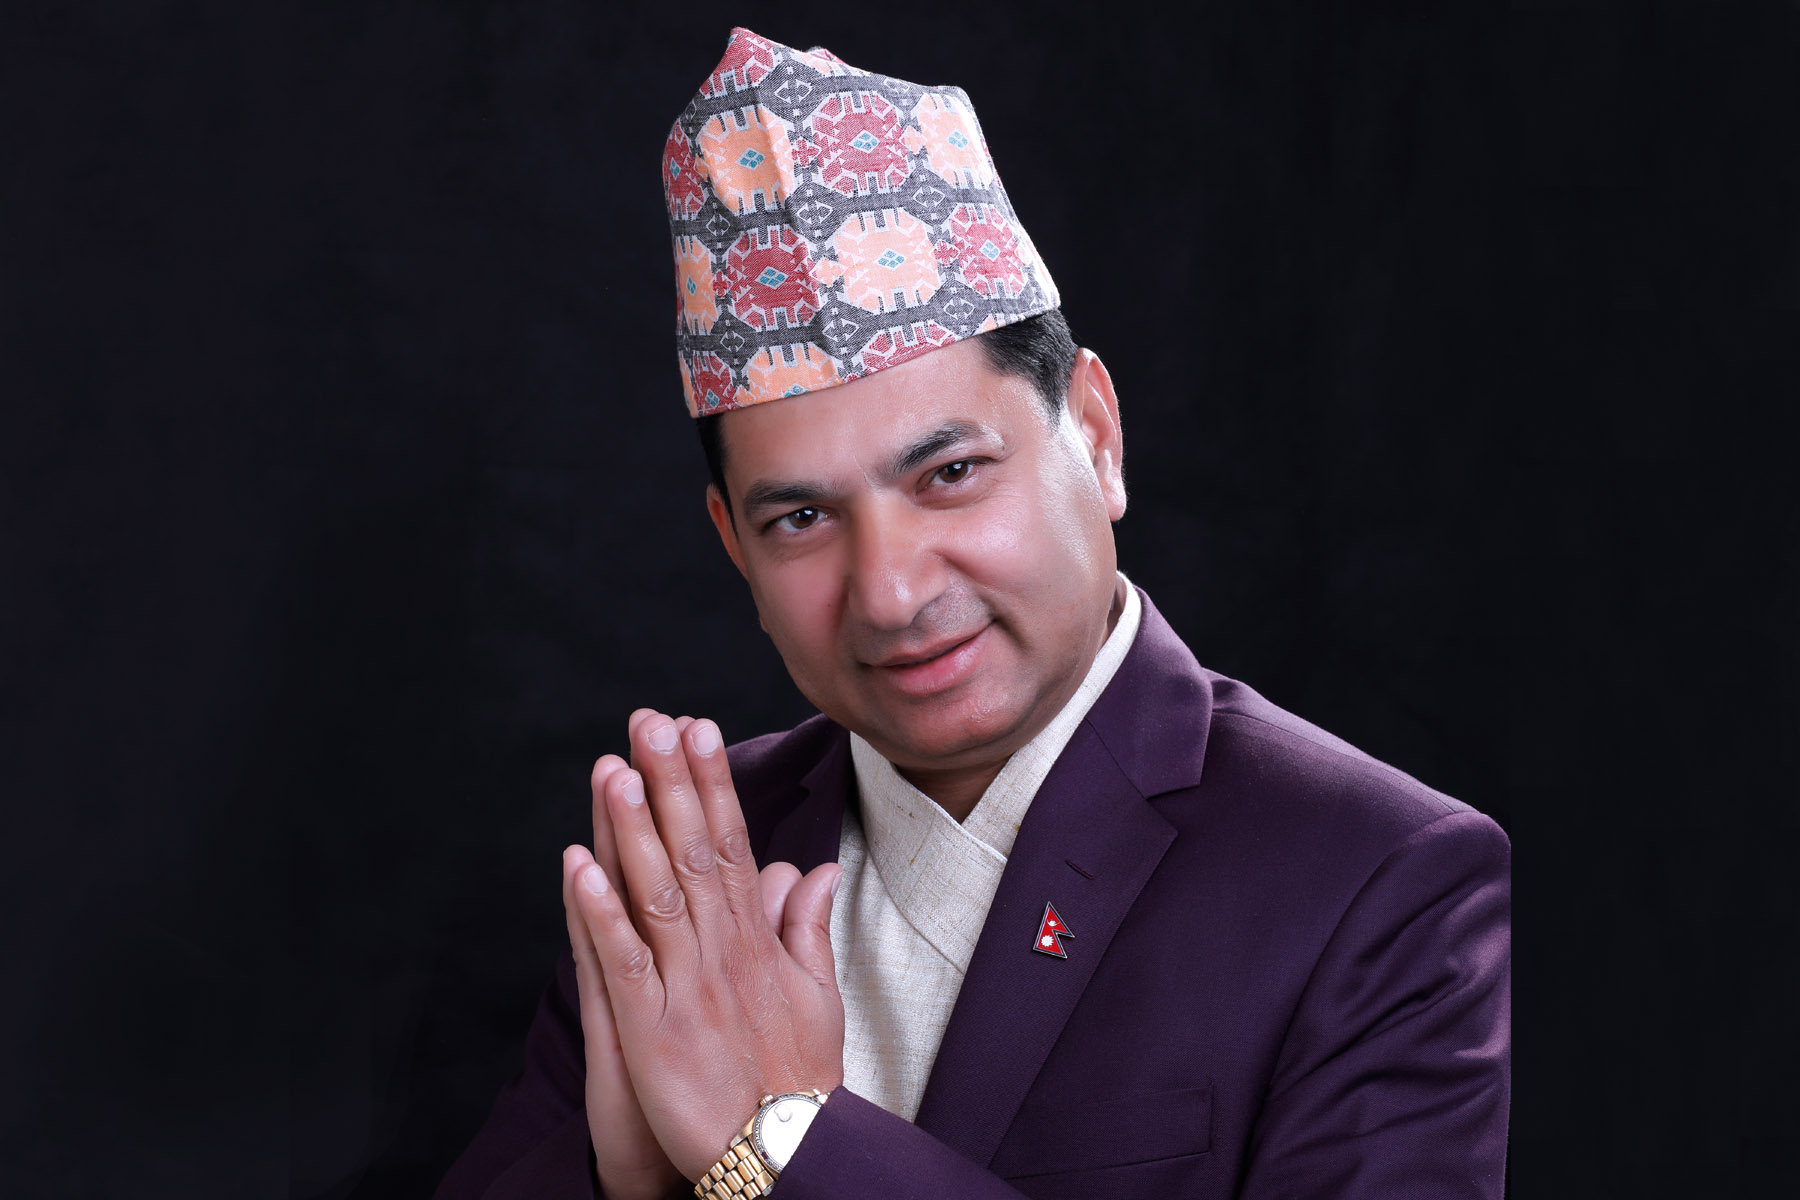 Mr. Ram Chandra Koirala